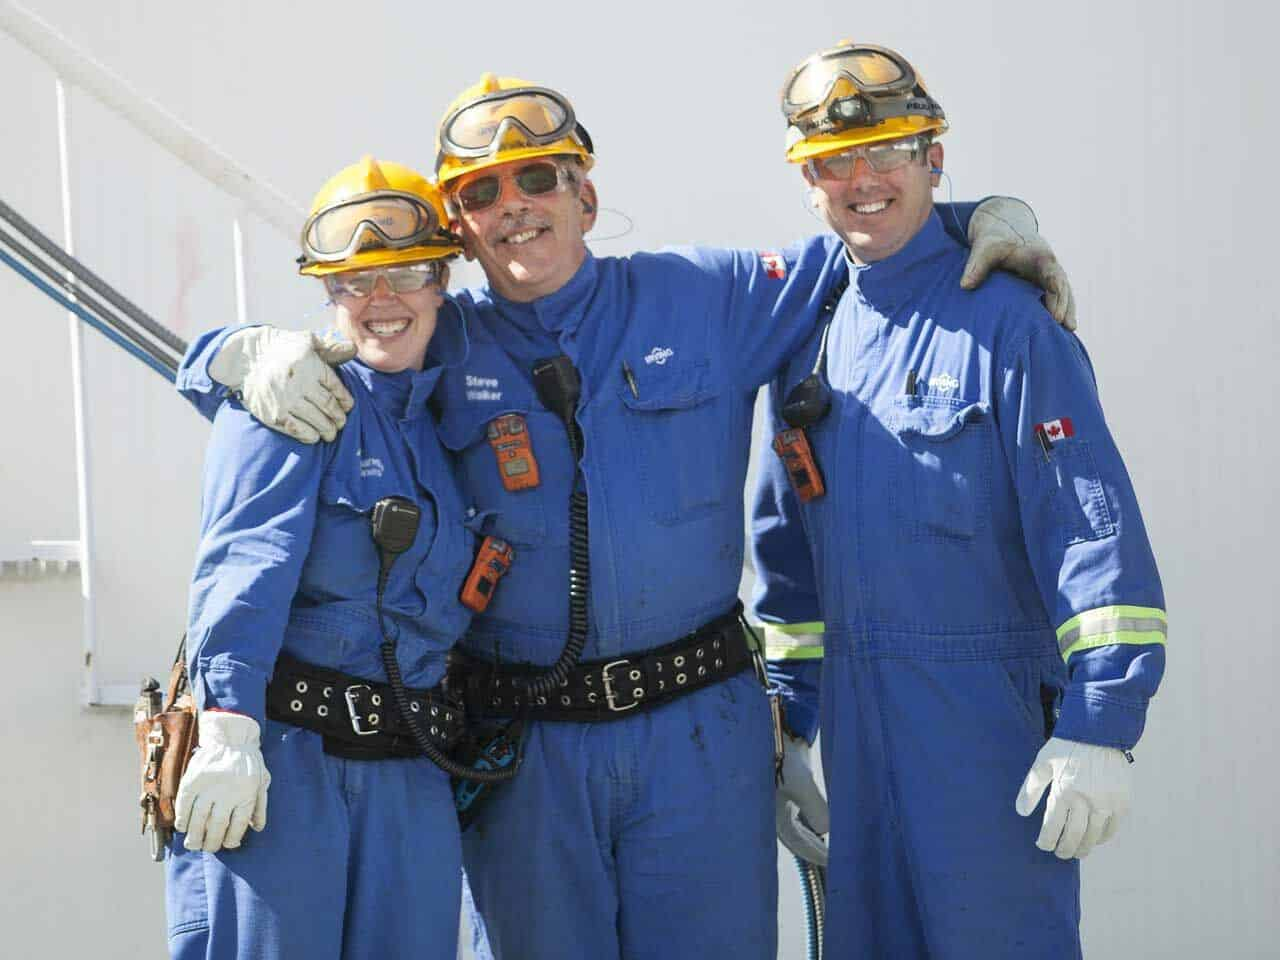 Irving Oil Wants To Operators, Technicians, Mechanics & More In NB, NS, QC & PC – Apply Today & Get Hired!